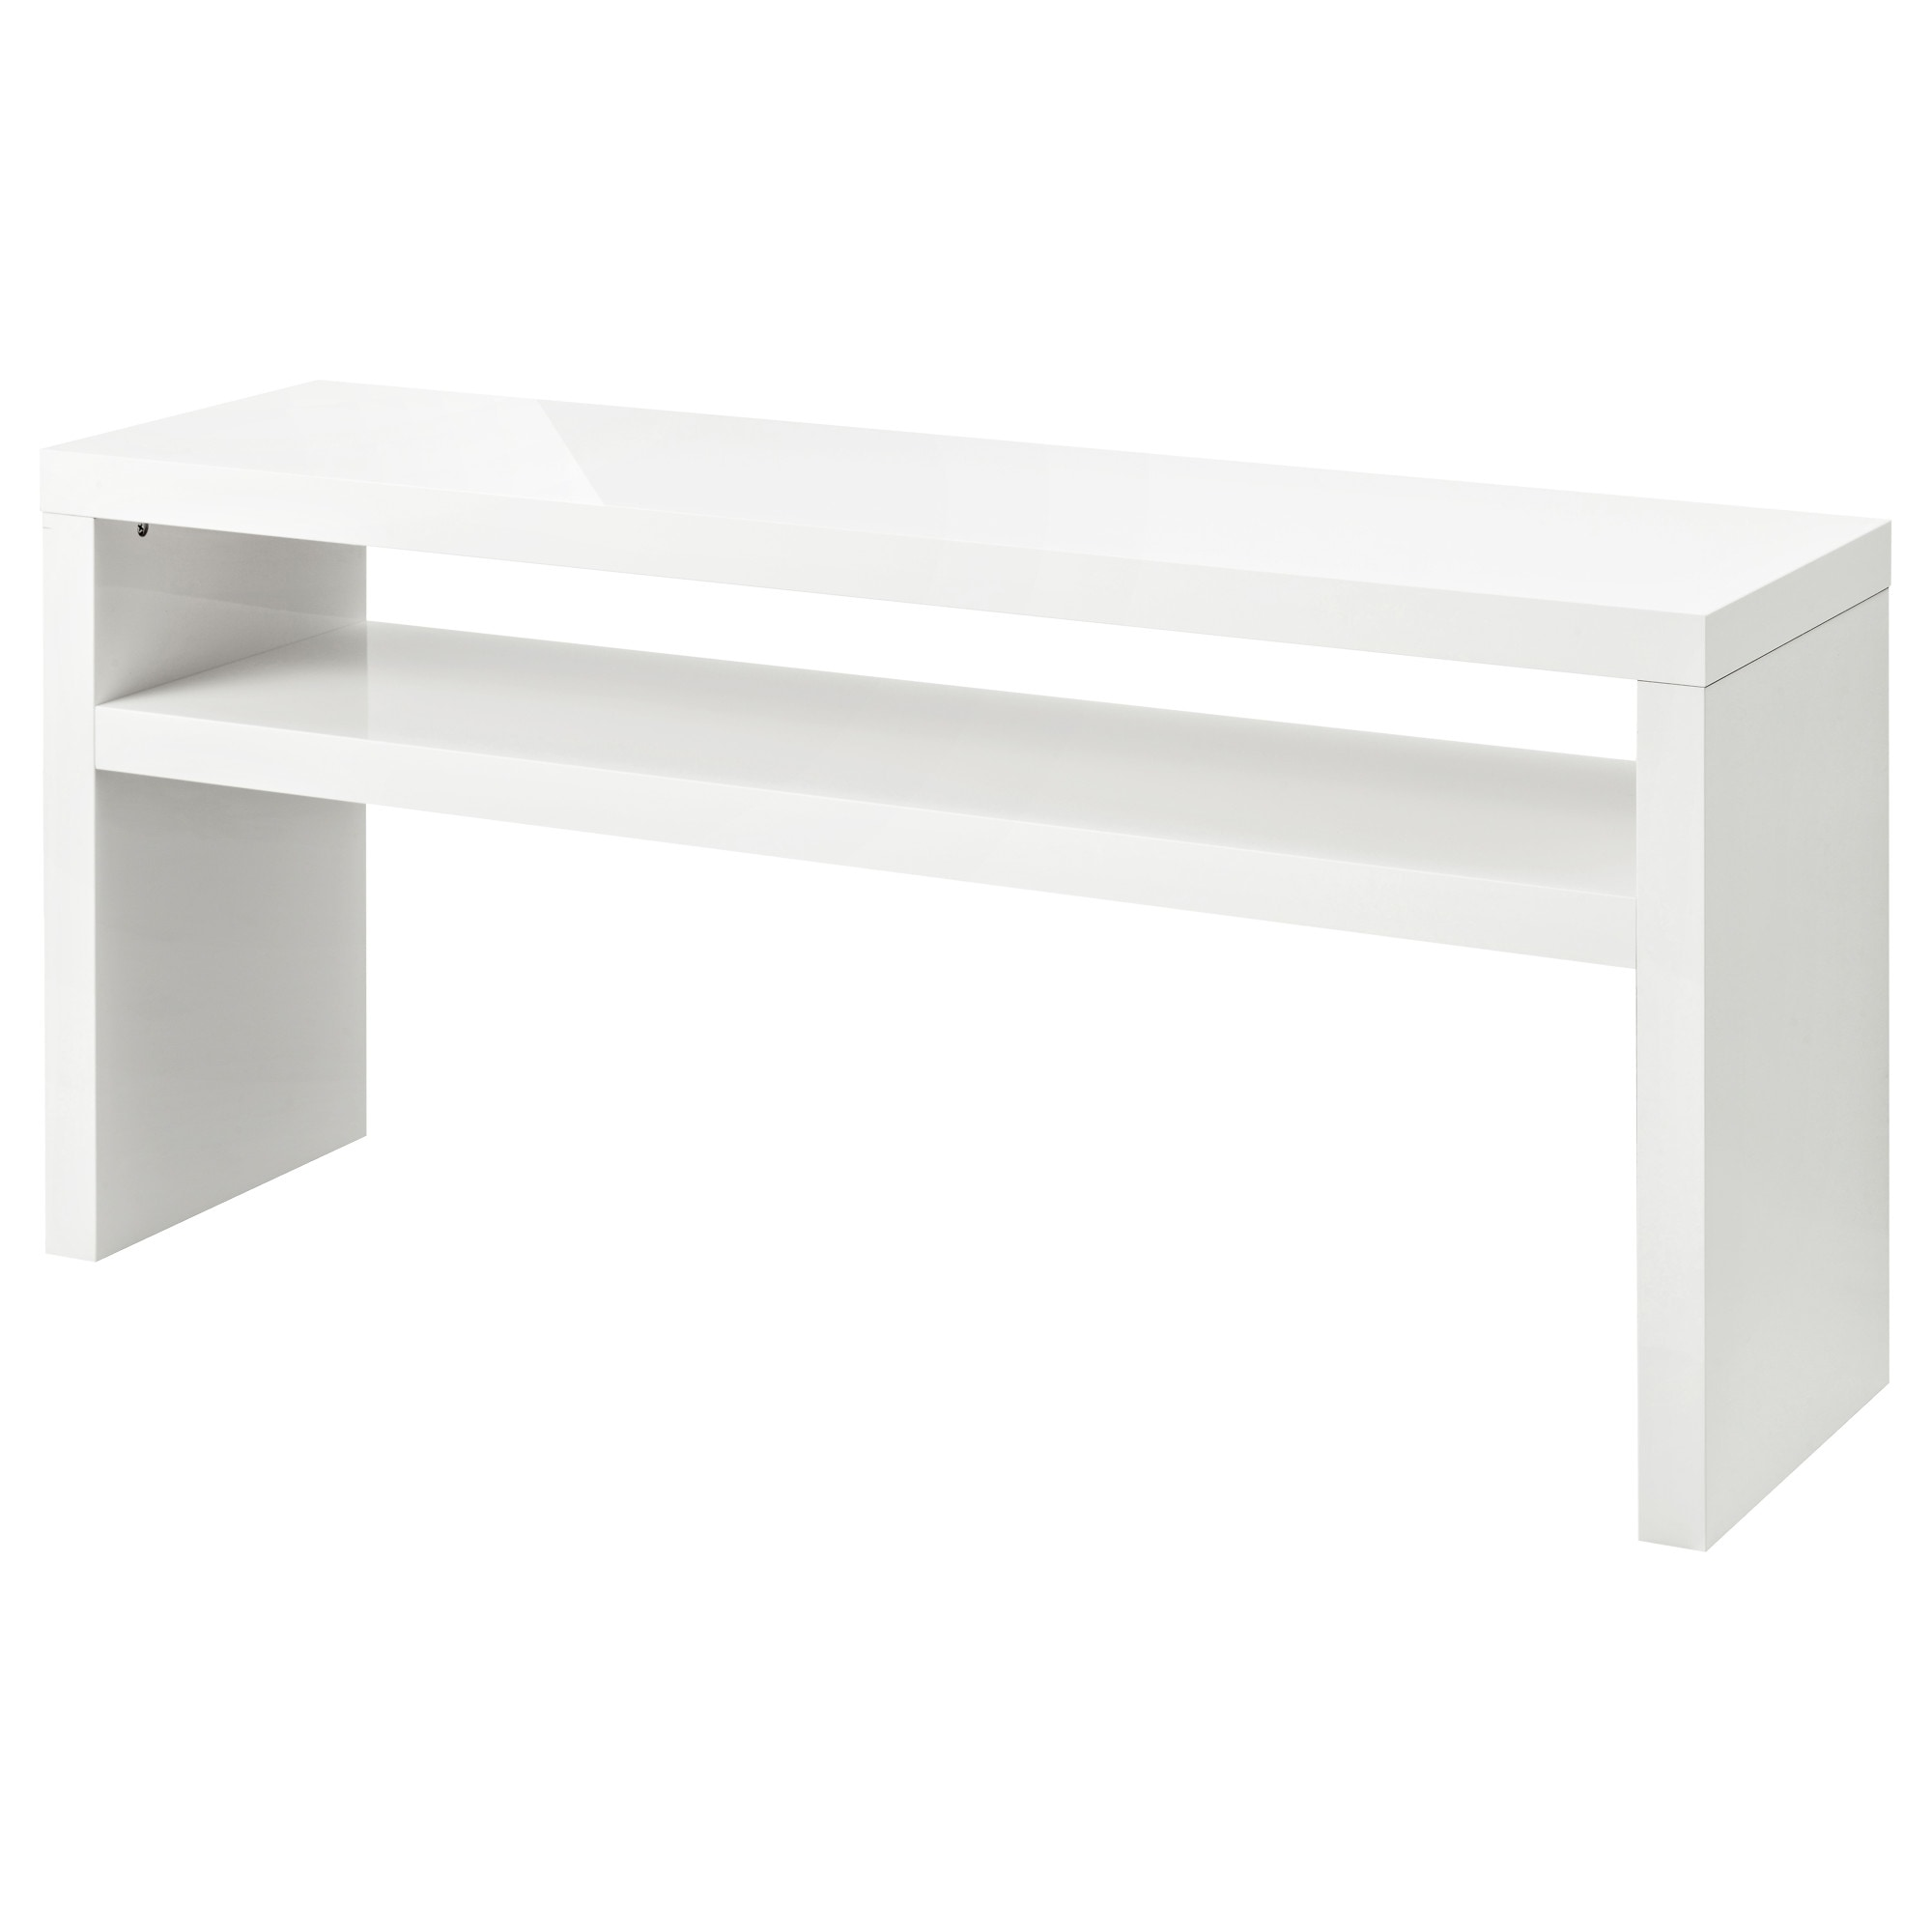 Table console chez ikea - Consolle camera da letto ...